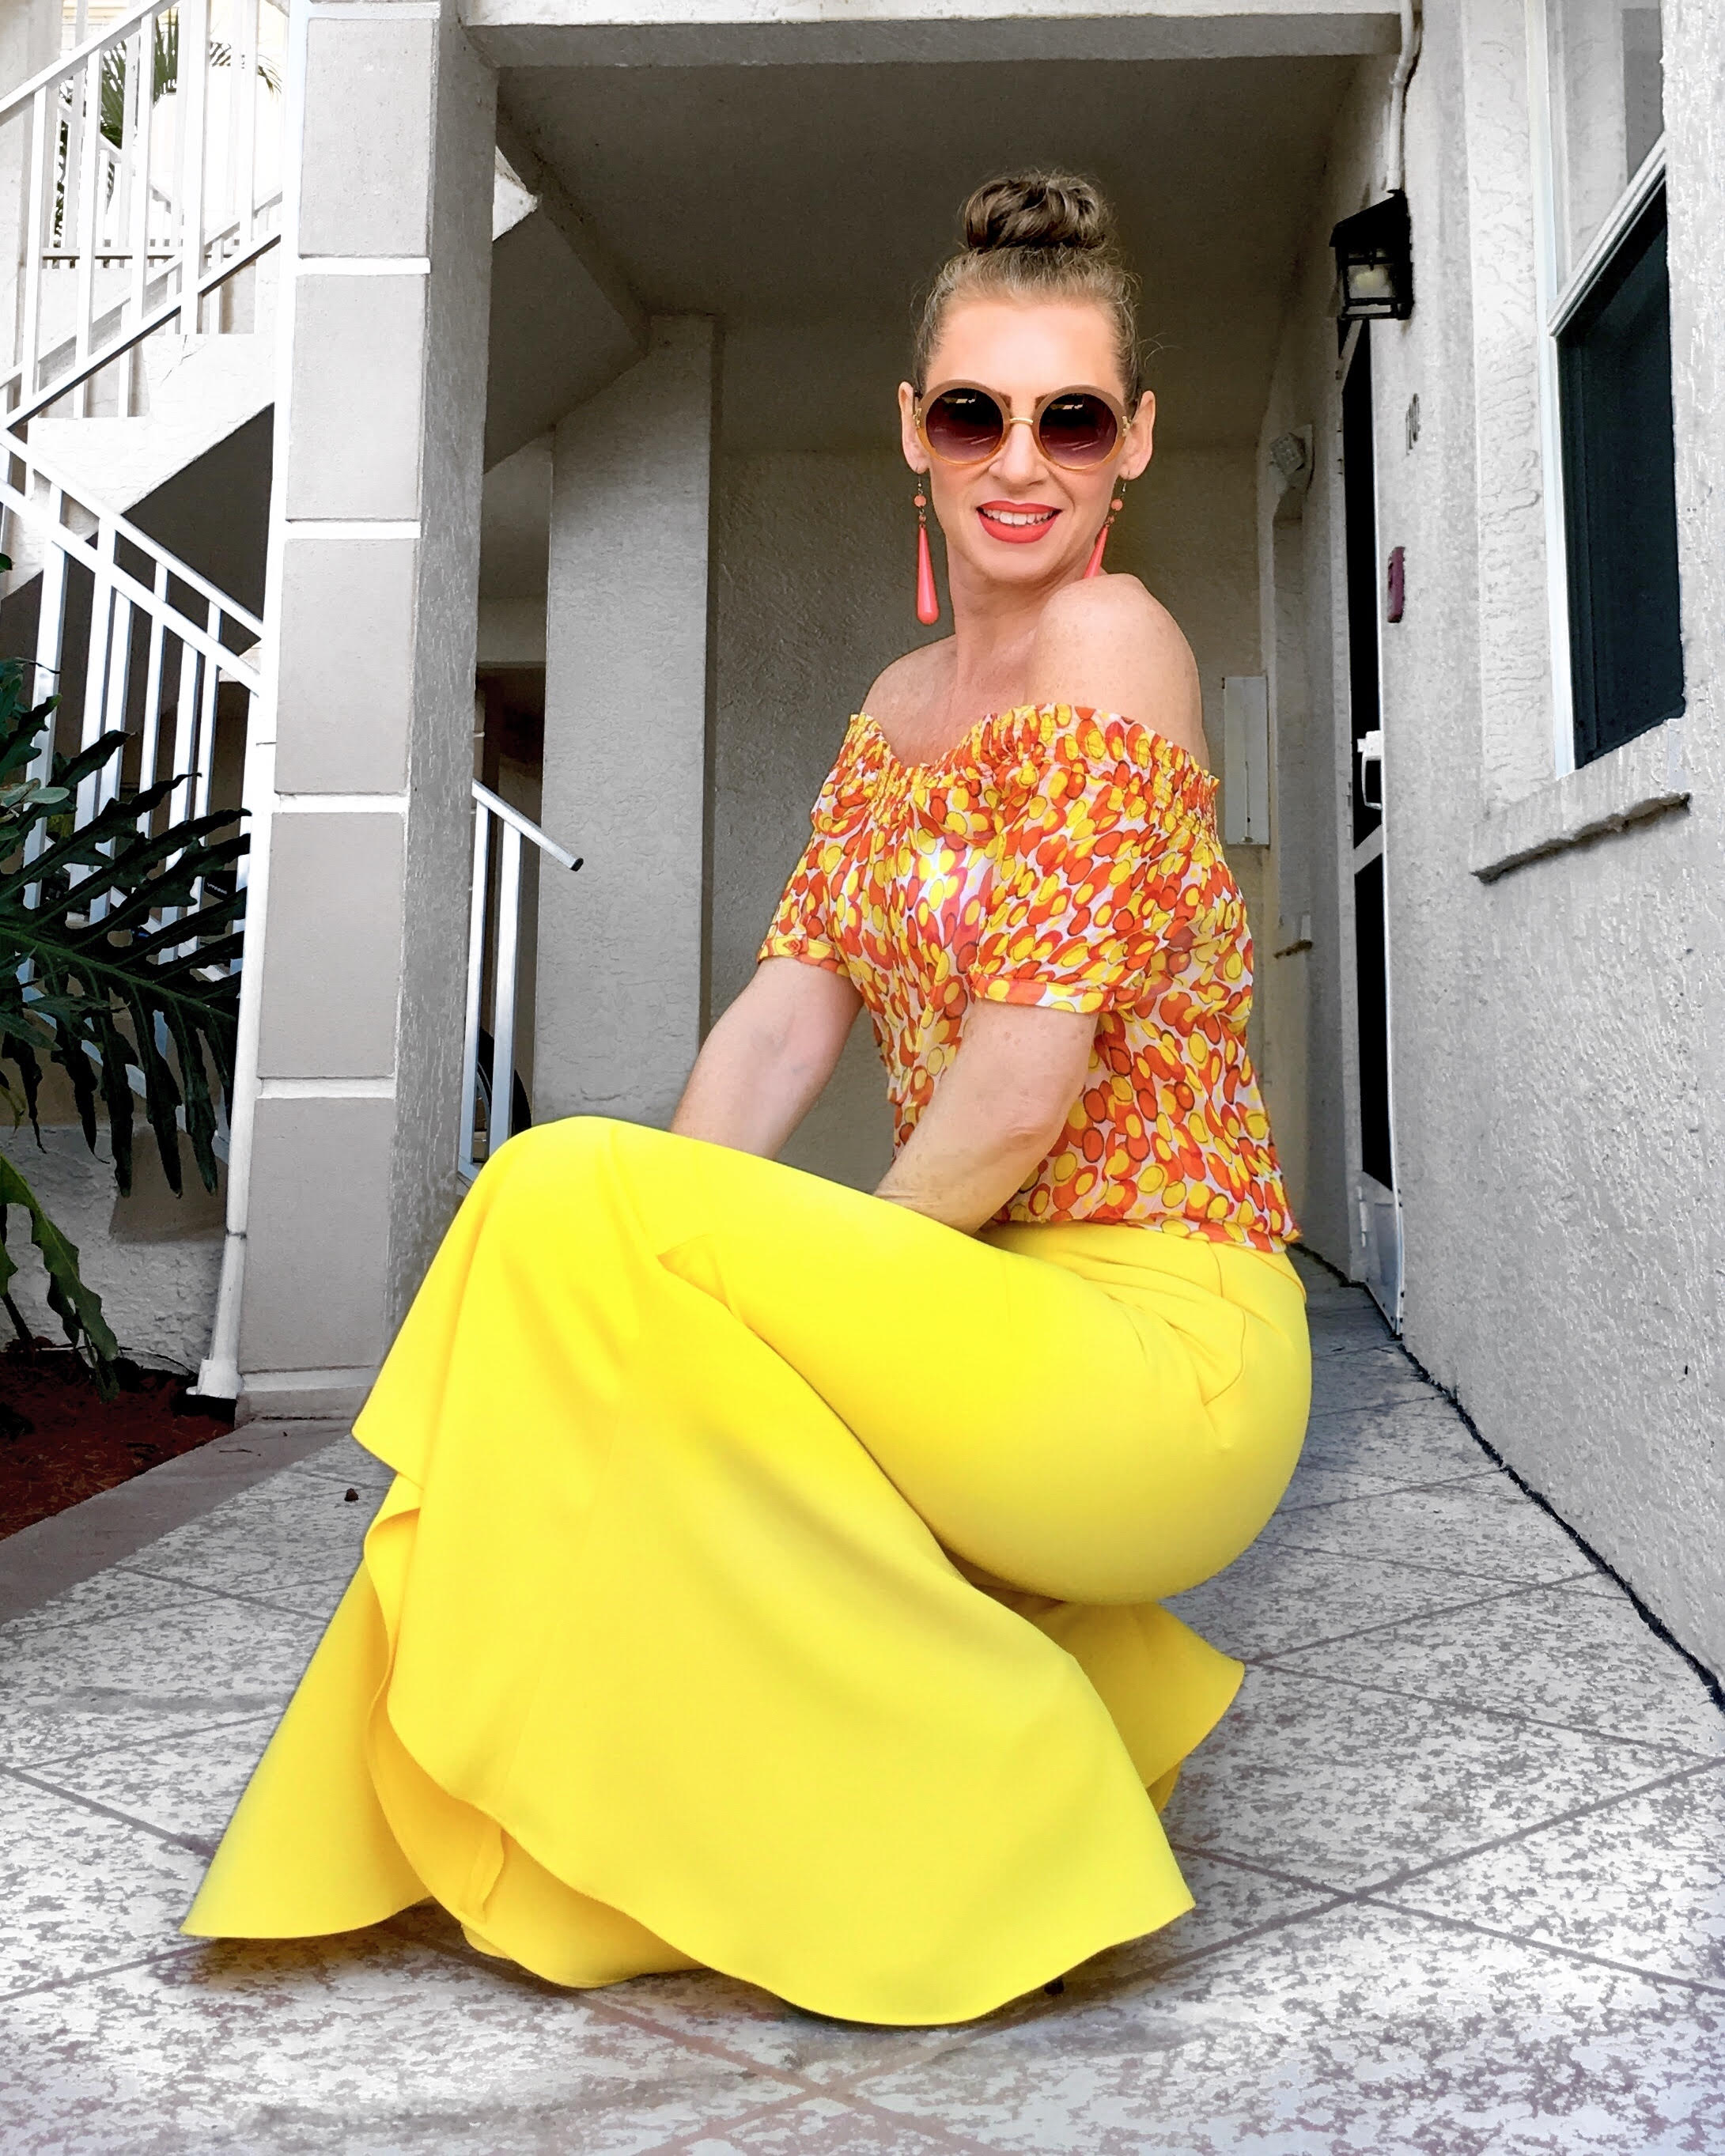 Zara flares and OTS top with Topshop frames, off to brunch in Bradenton